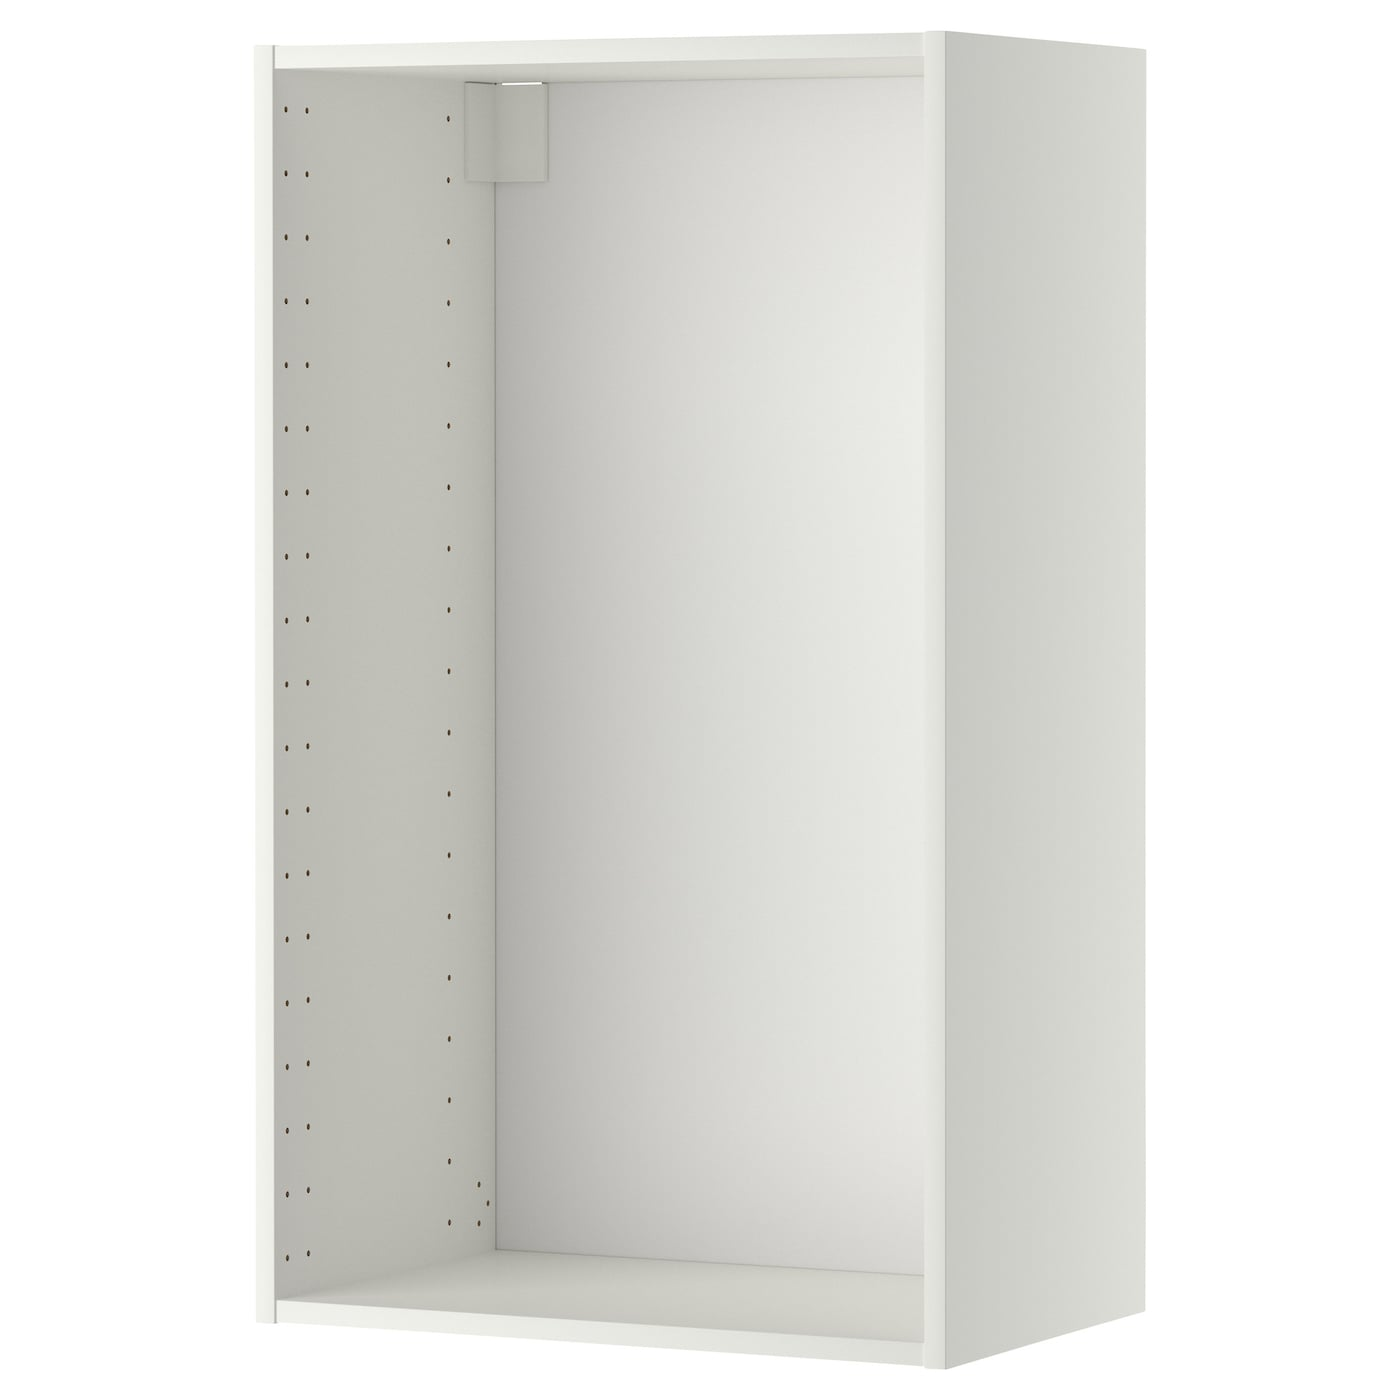 Metod Wall Cabinet Frame White Ikea Switzerland